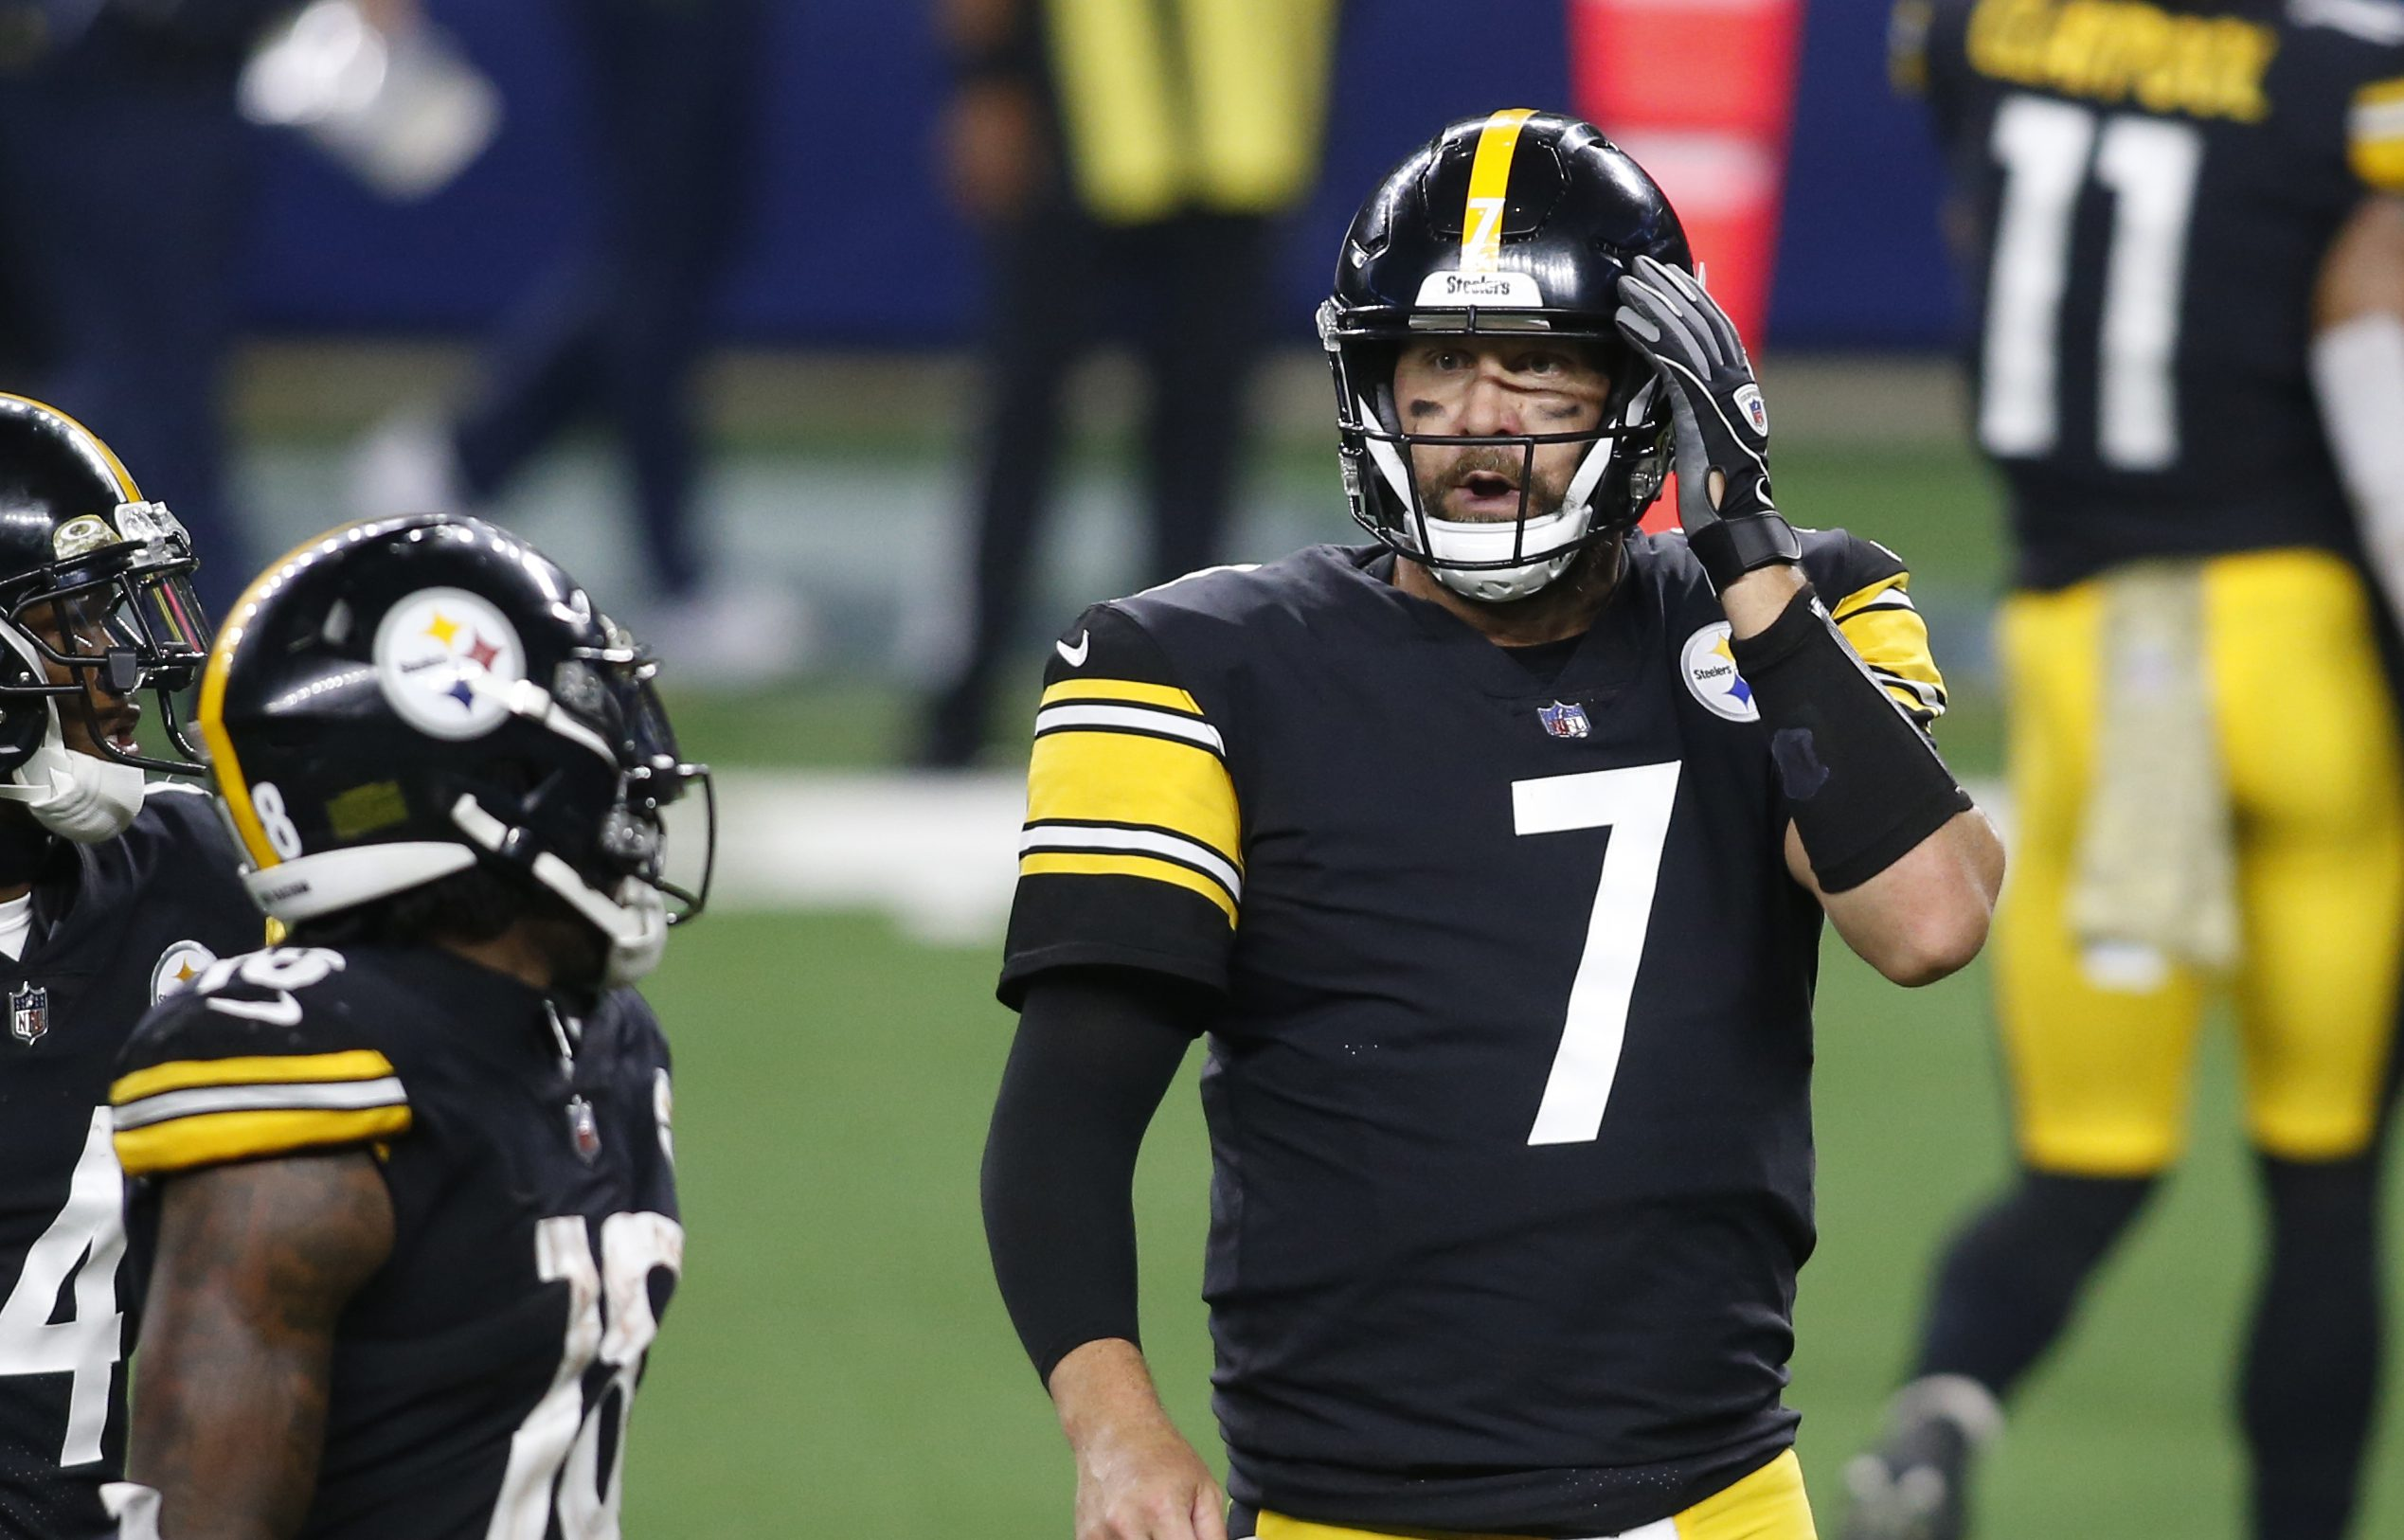 Ben Roethlisberger on knee injury: Part of the game of football – NBC Sports – NFL